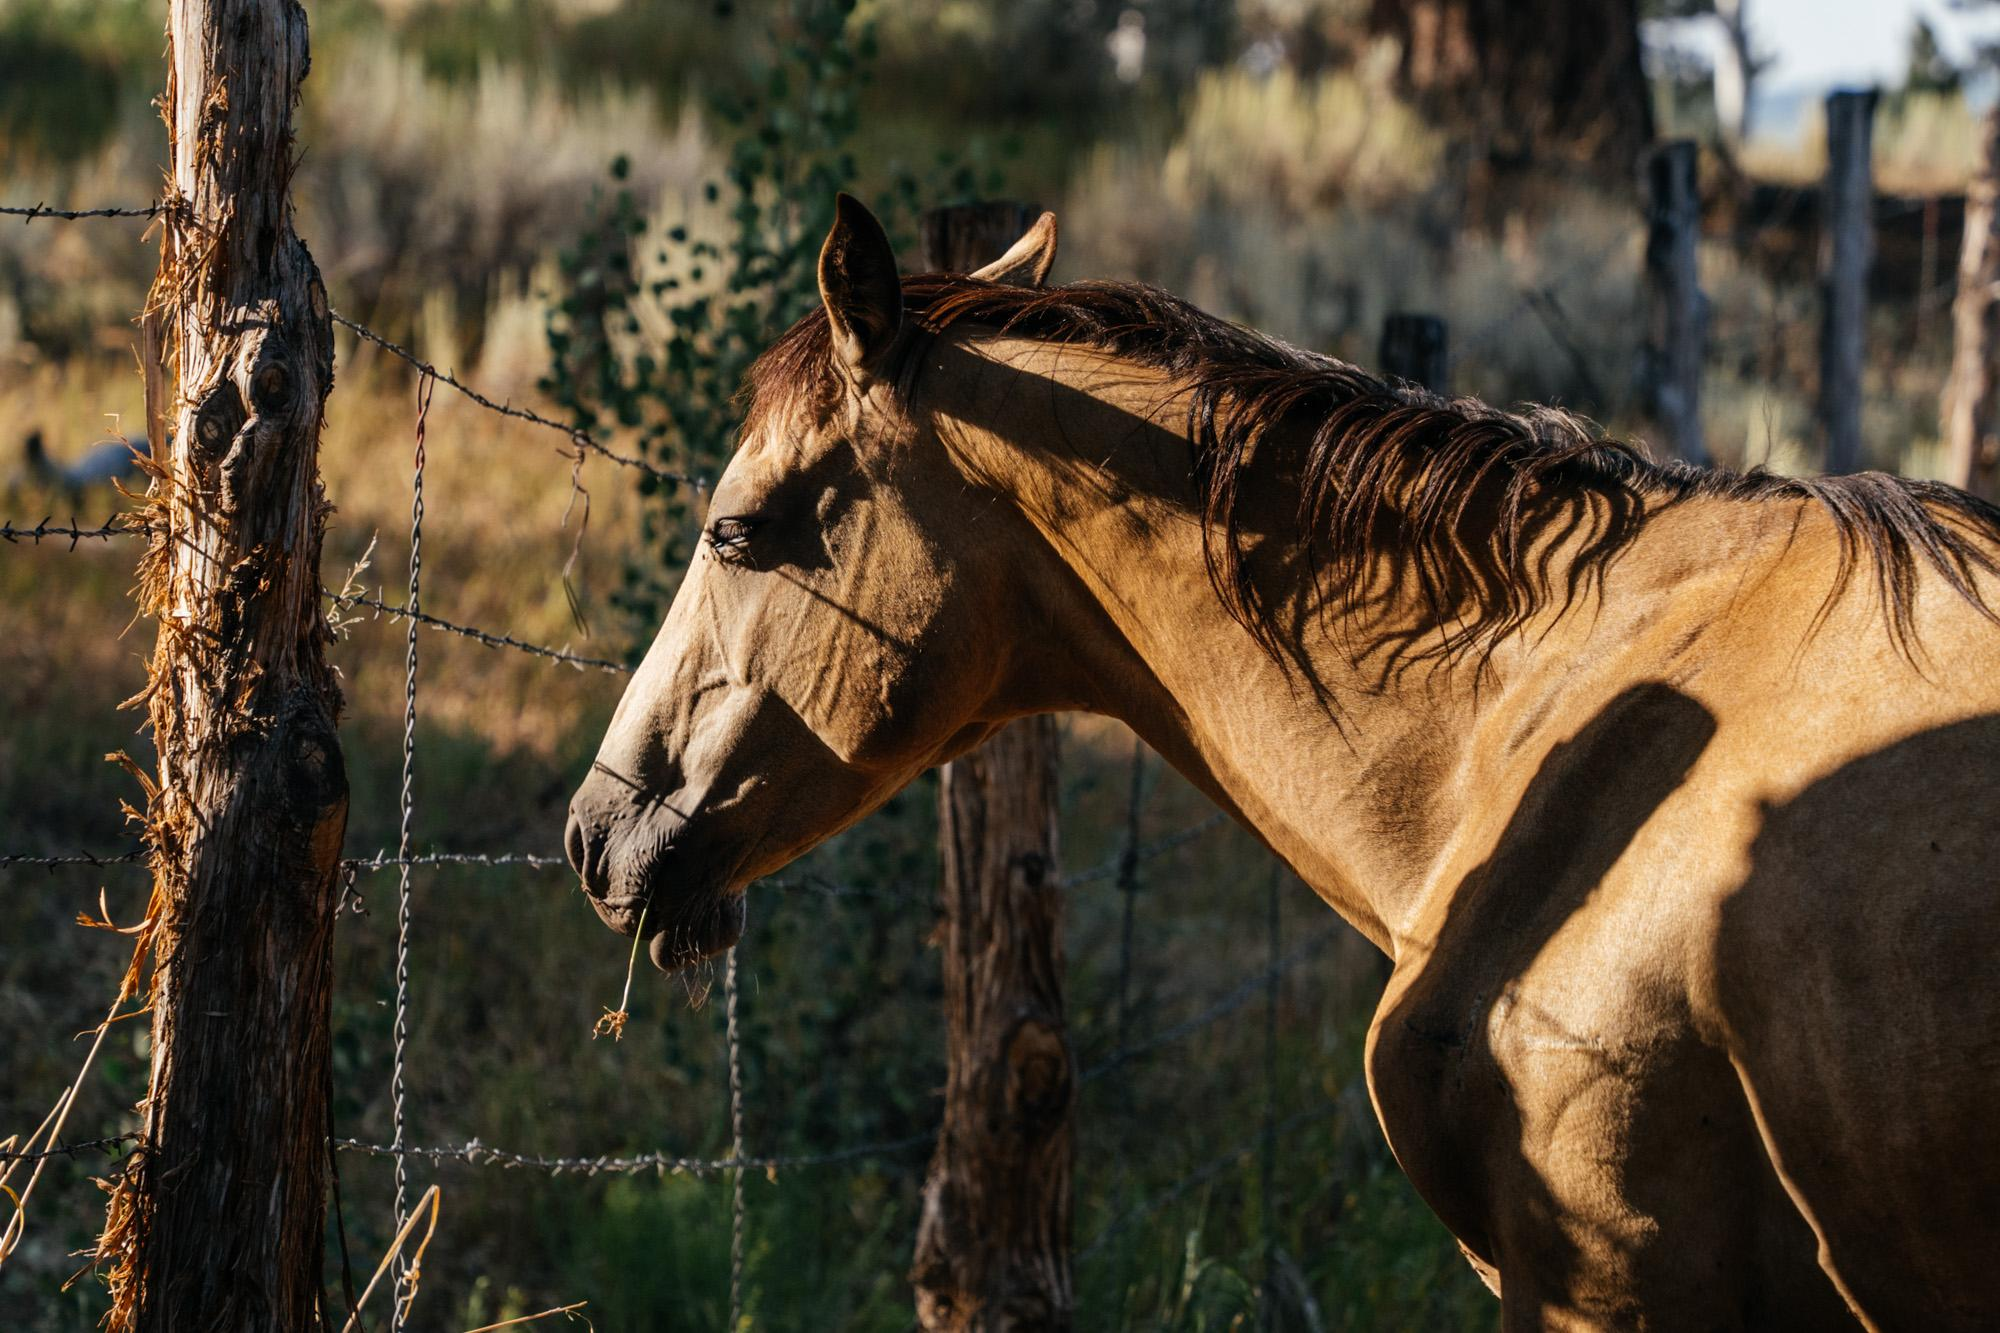 Sleeping while eating: a horse's tale